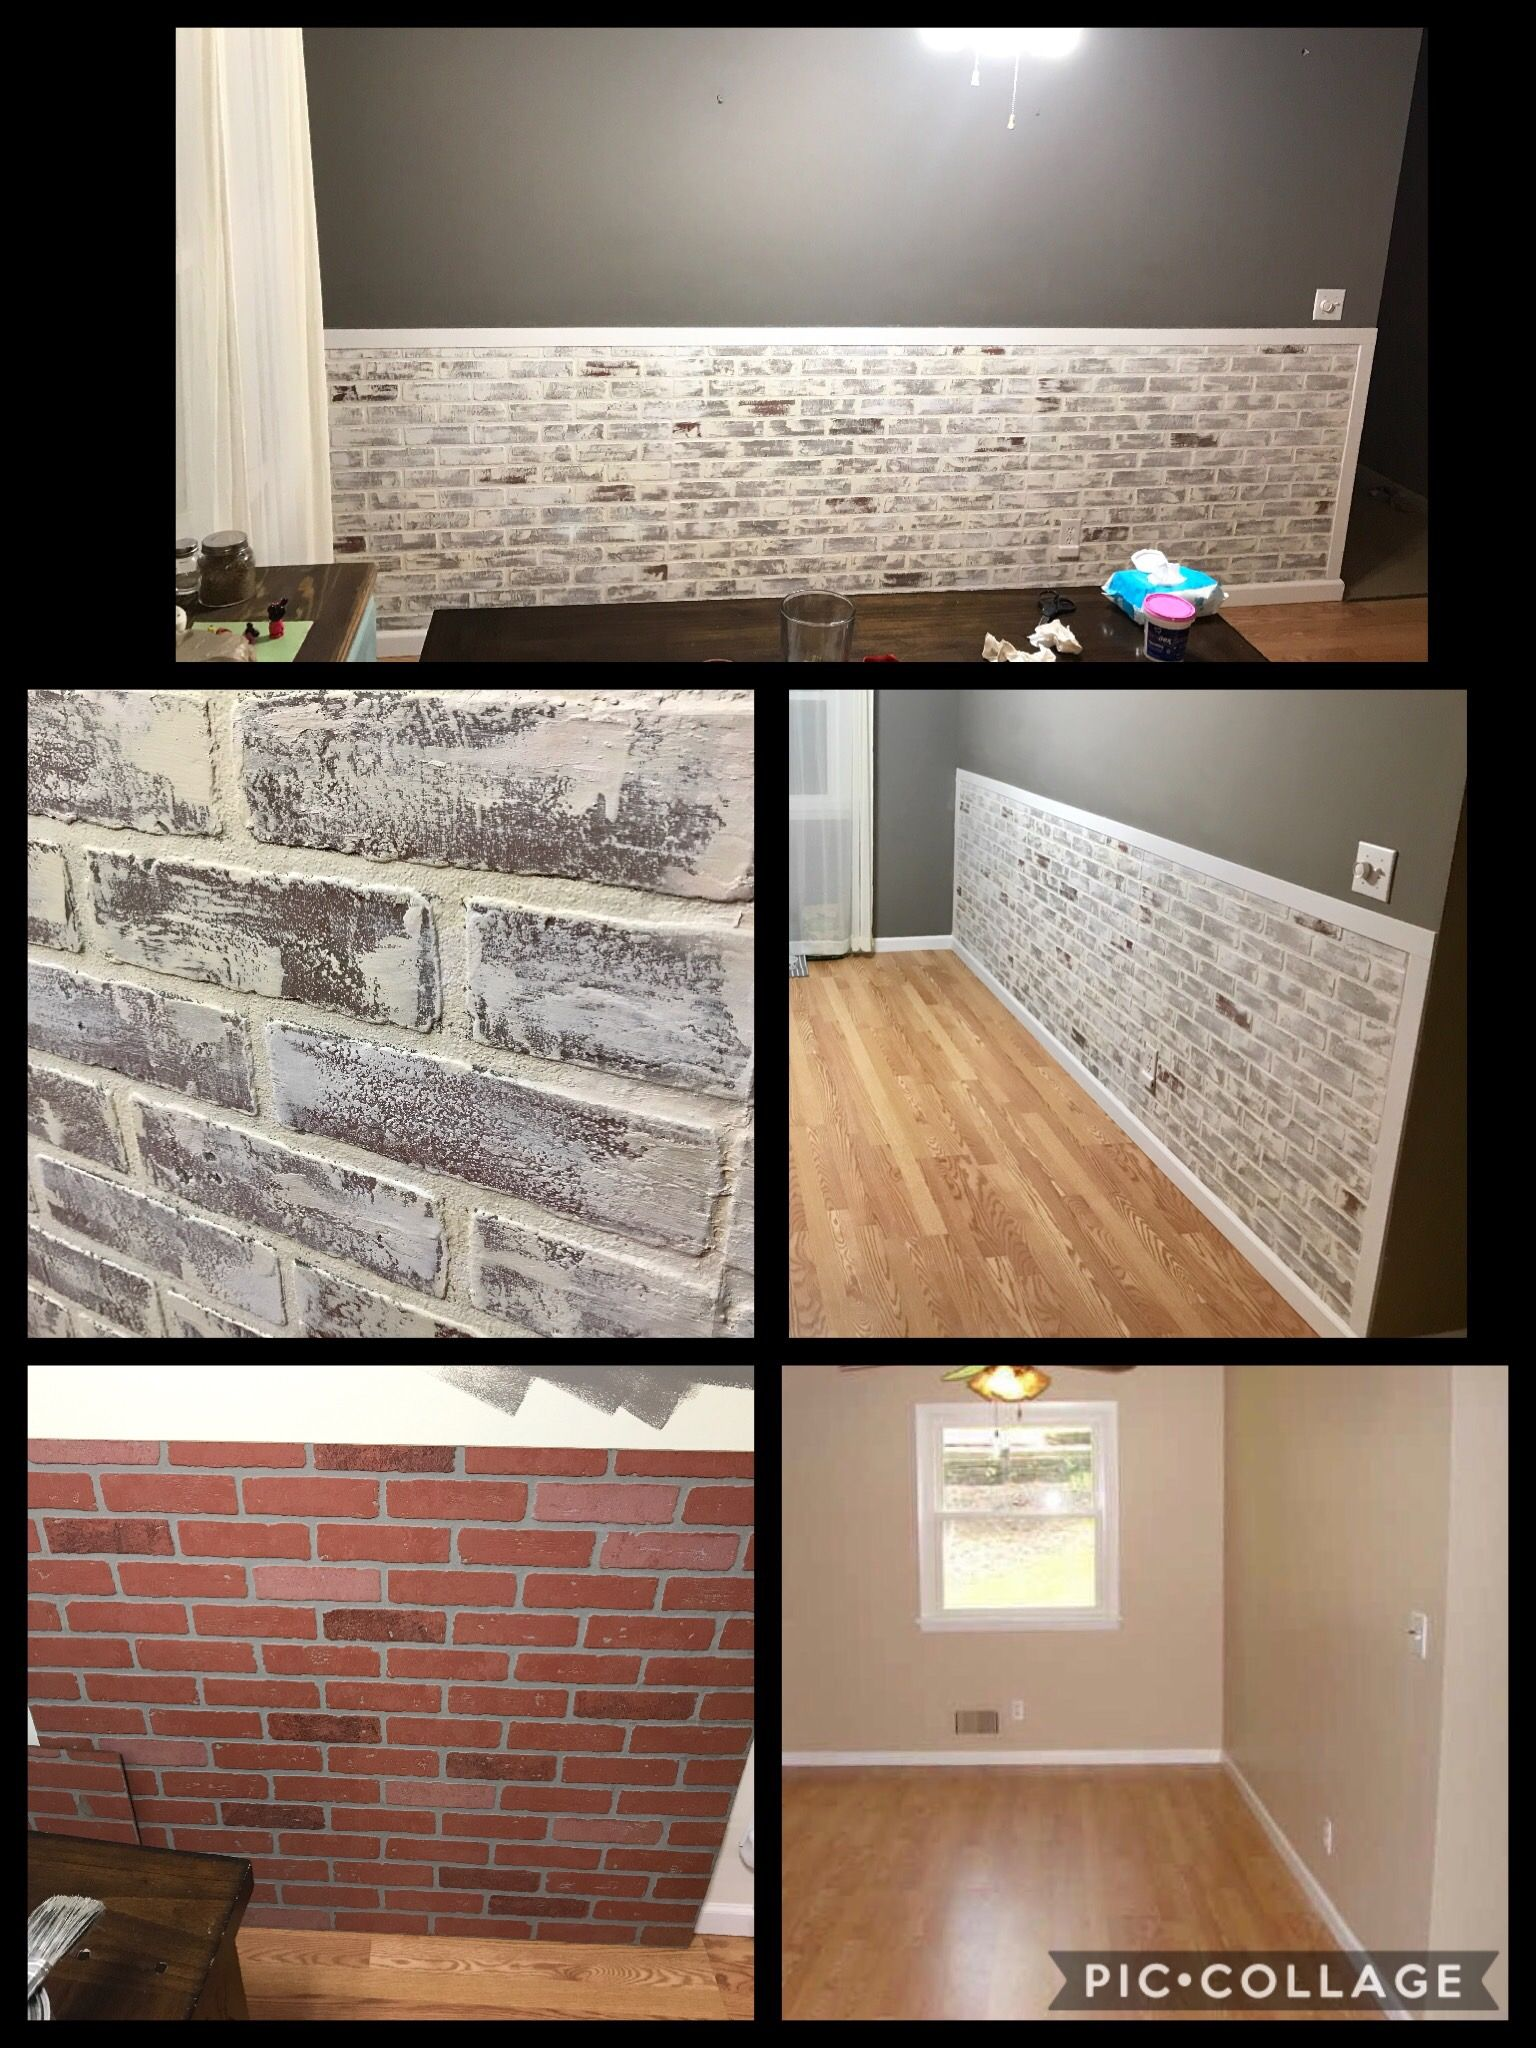 It All Started With Red Brick Paneling From Home Depot Whitewash And Dry Brushing Technique To Get This Lo Faux Brick Walls Brick Wall Paneling Brick Paneling